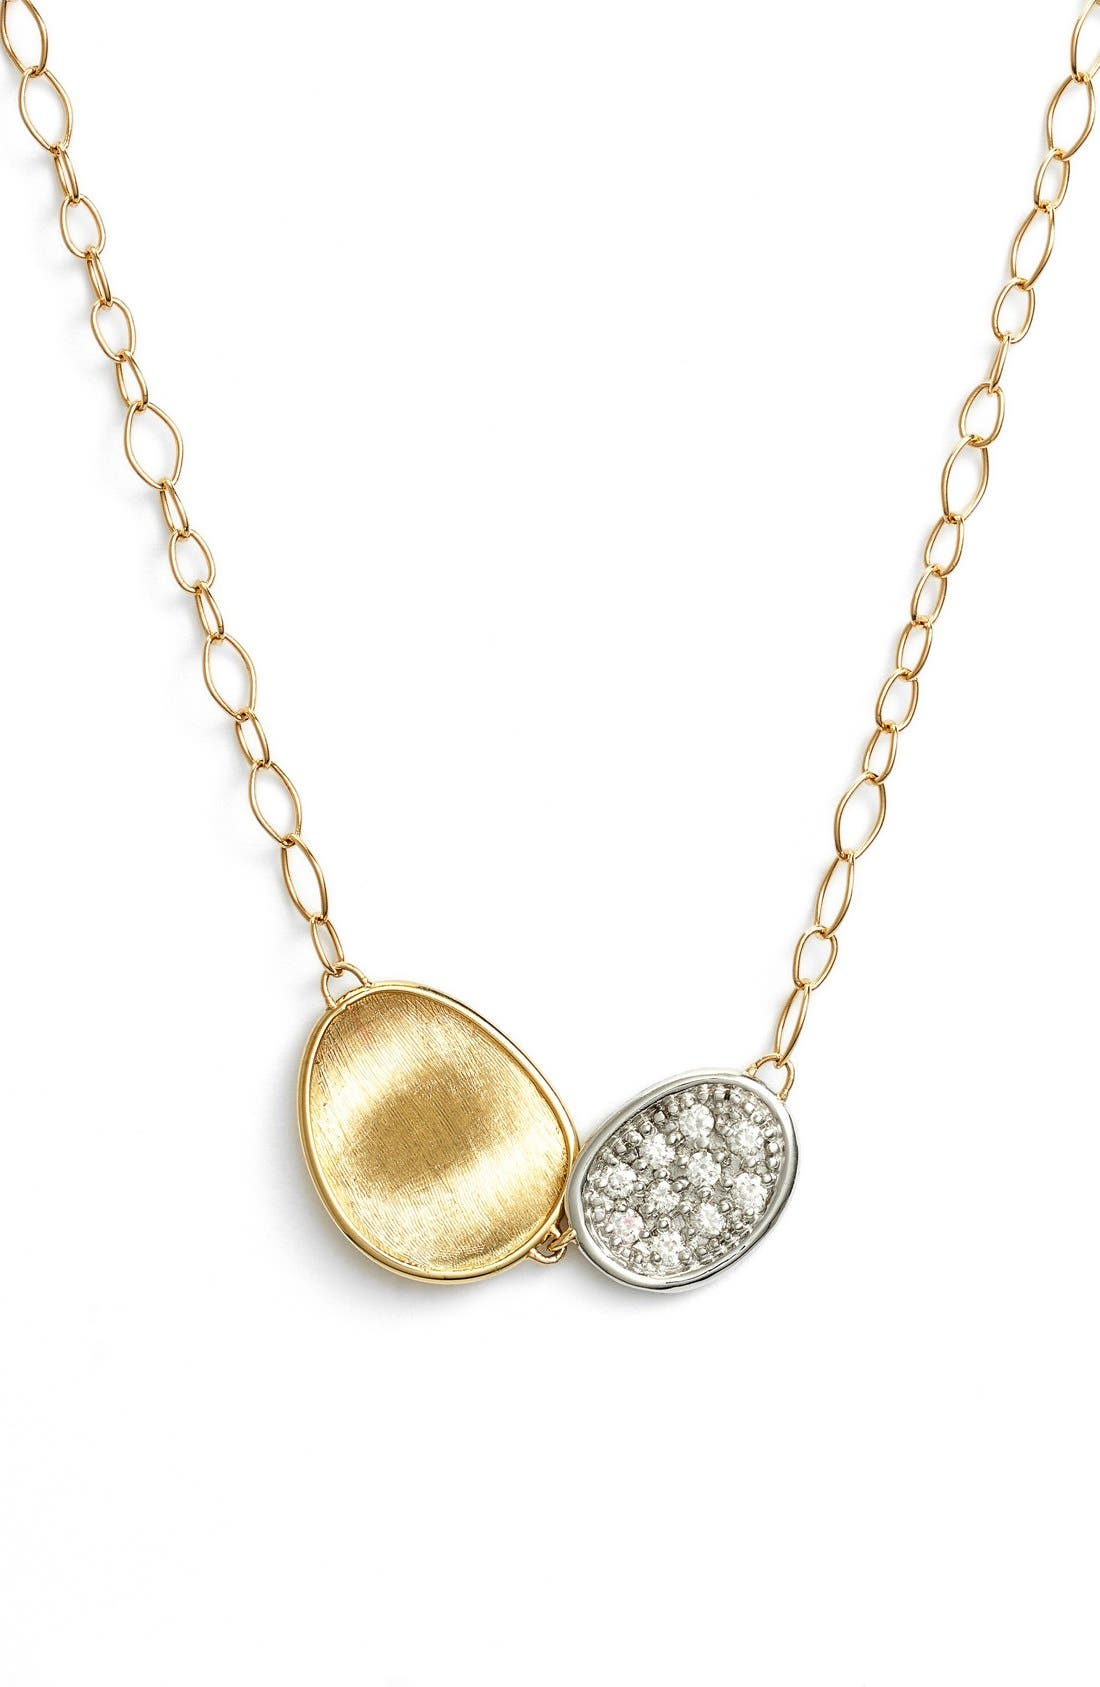 Lunaria Pendant Necklace,                             Main thumbnail 1, color,                             YELLOW GOLD